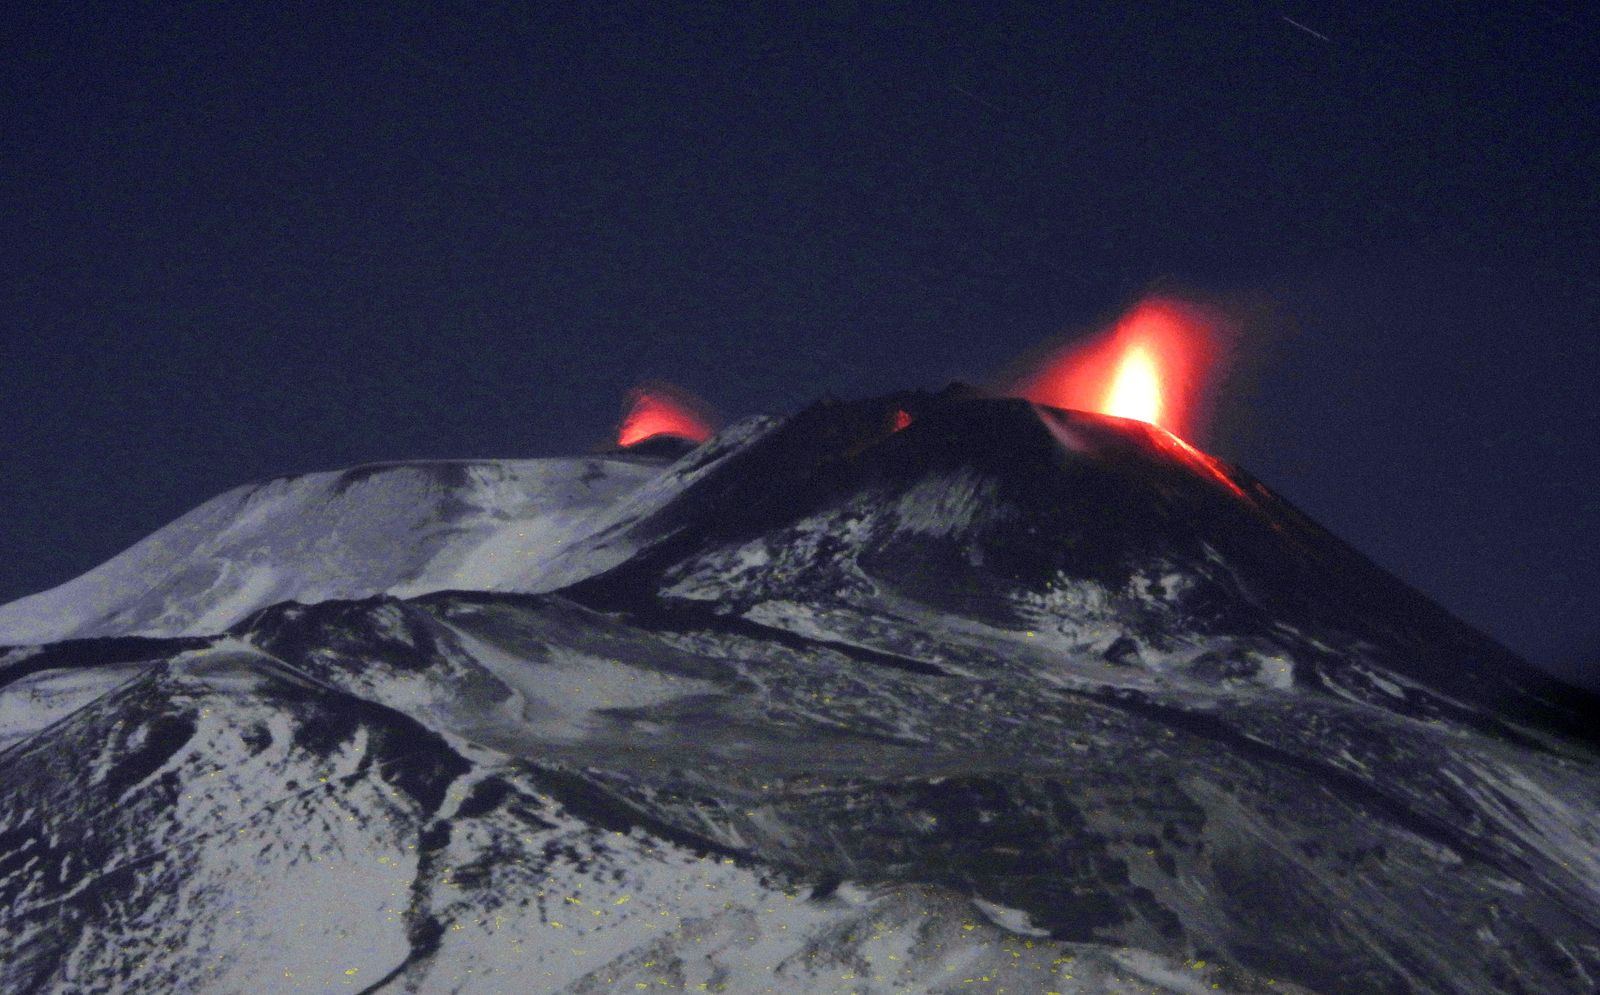 Etna - in the evening of 28.12.2020, strombolian activity with voragine and south-east - photo Boris Behncke